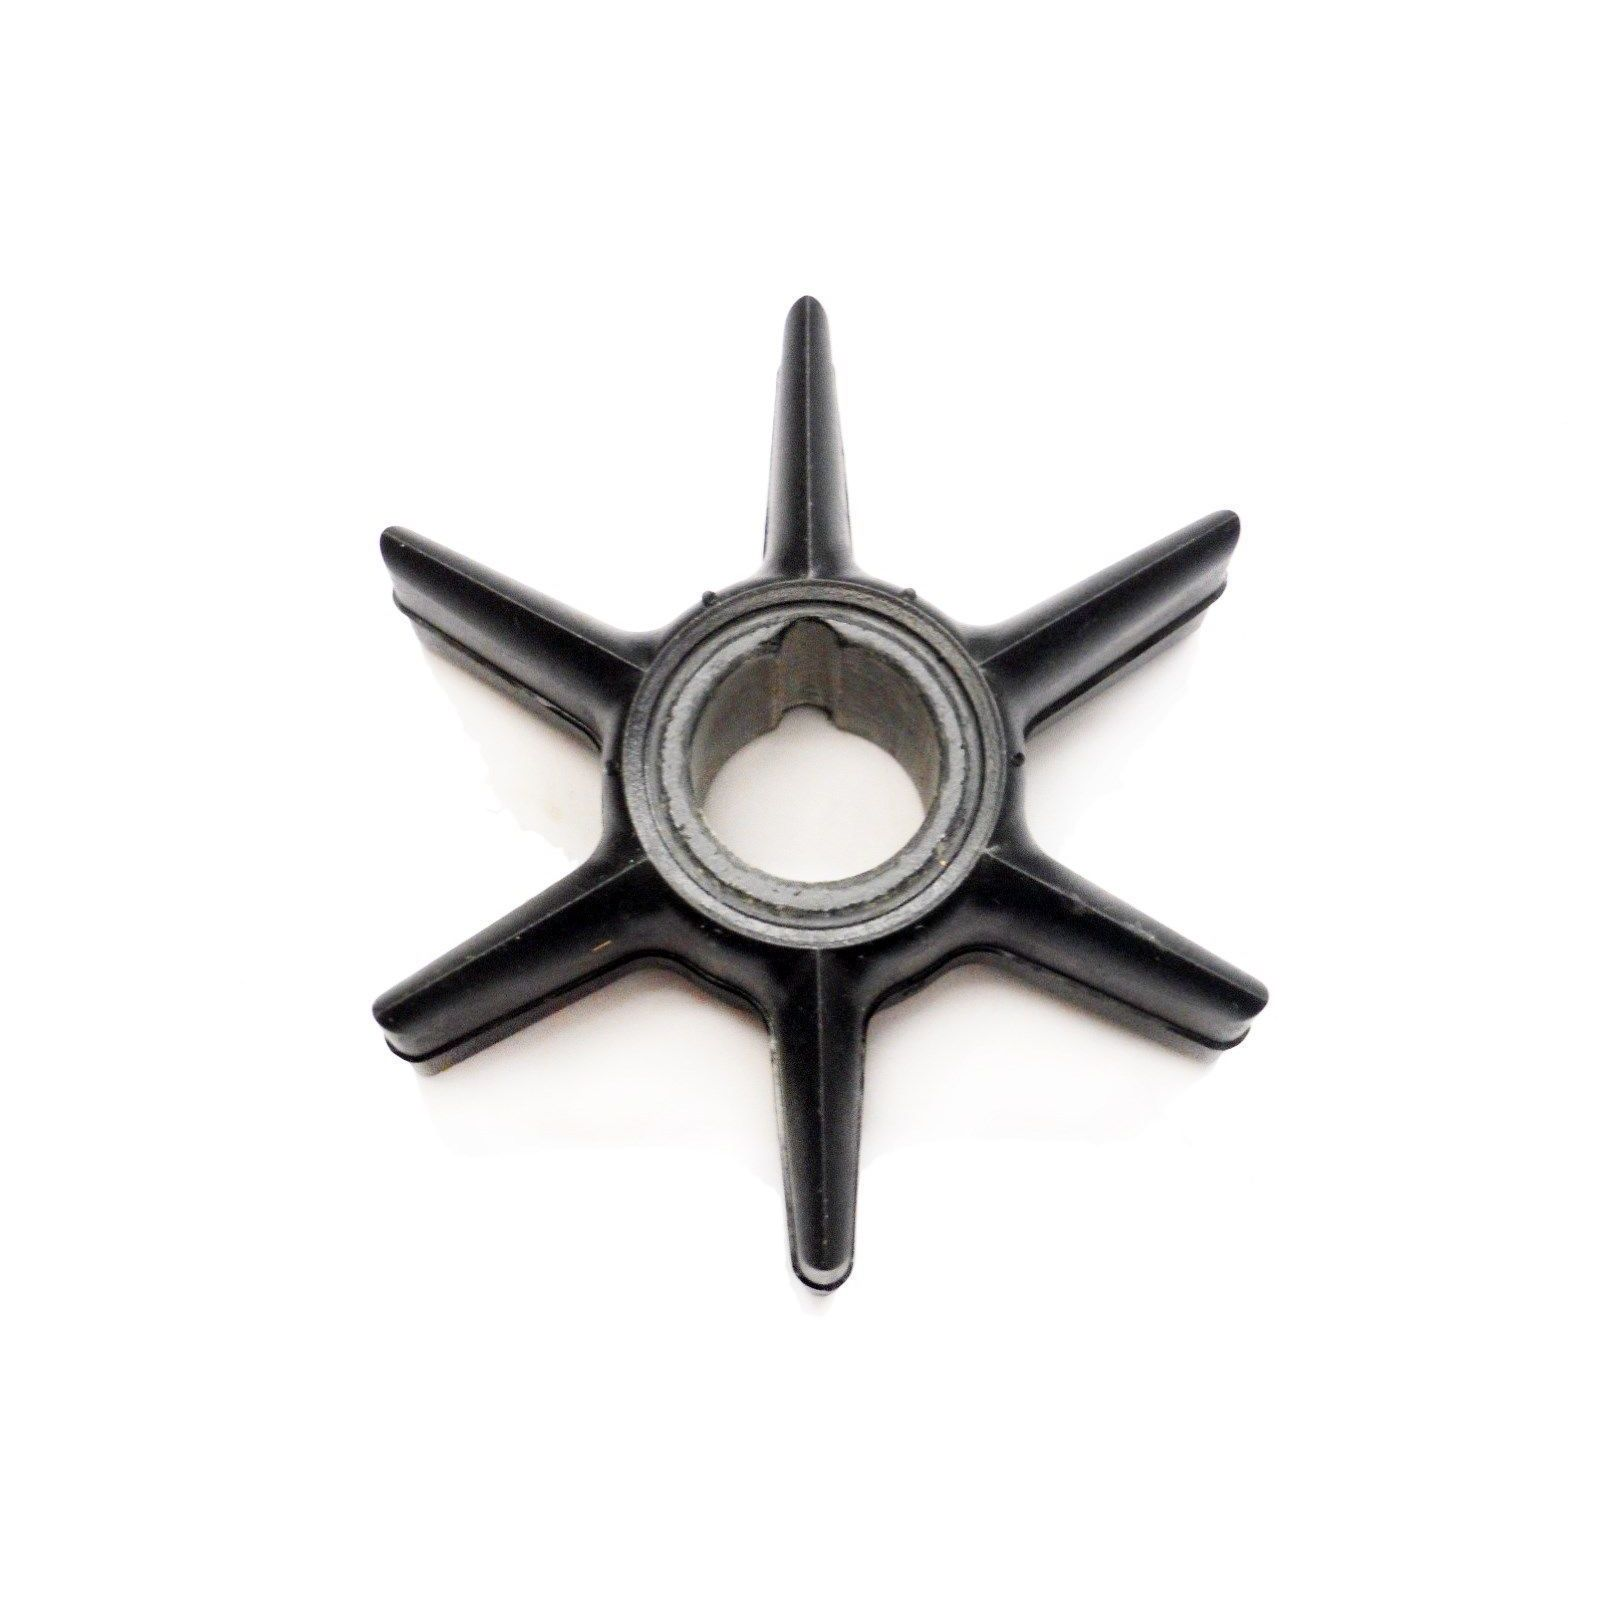 19453T Water Pump Impeller for Mercury 30/40/50/55/60hp Outboards Genuine  OEM